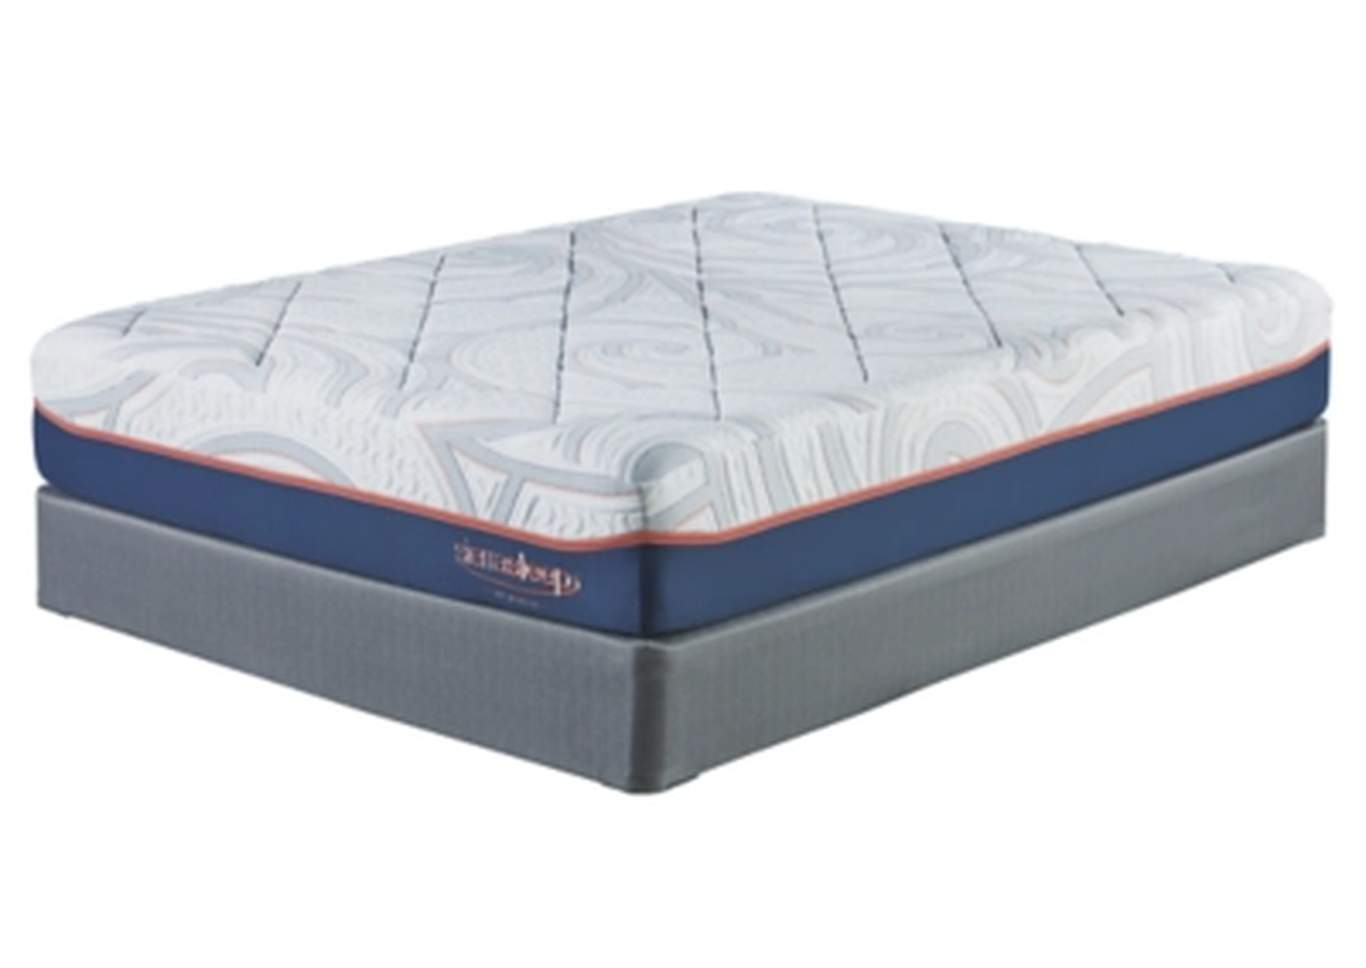 12 Inch MyGel White King Mattress w/Foundation,Sierra Sleep by Ashley